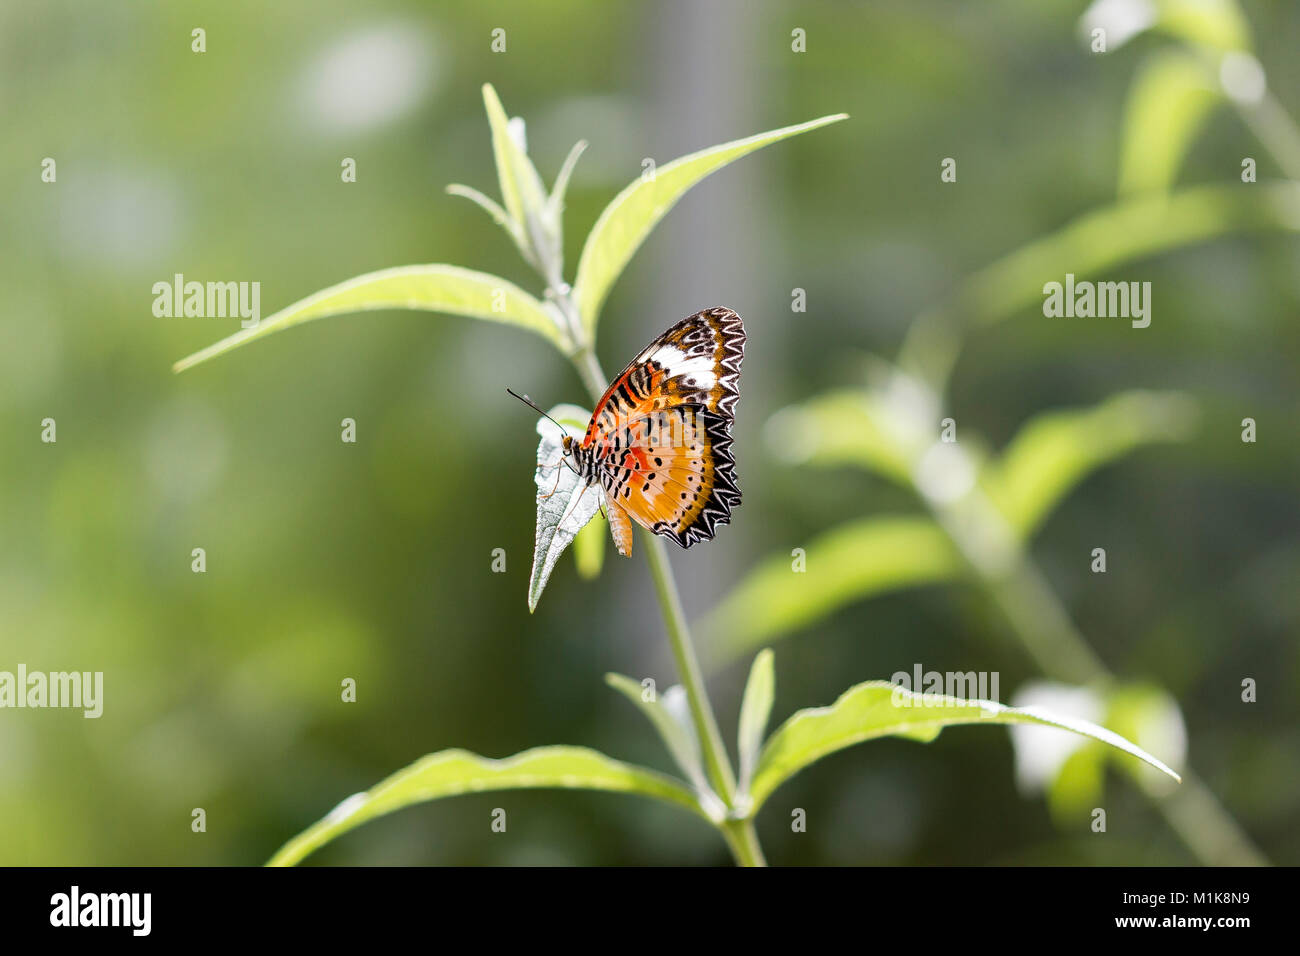 leopard or lacewing butterfly or Malay lacewing butterfly - Stock Image